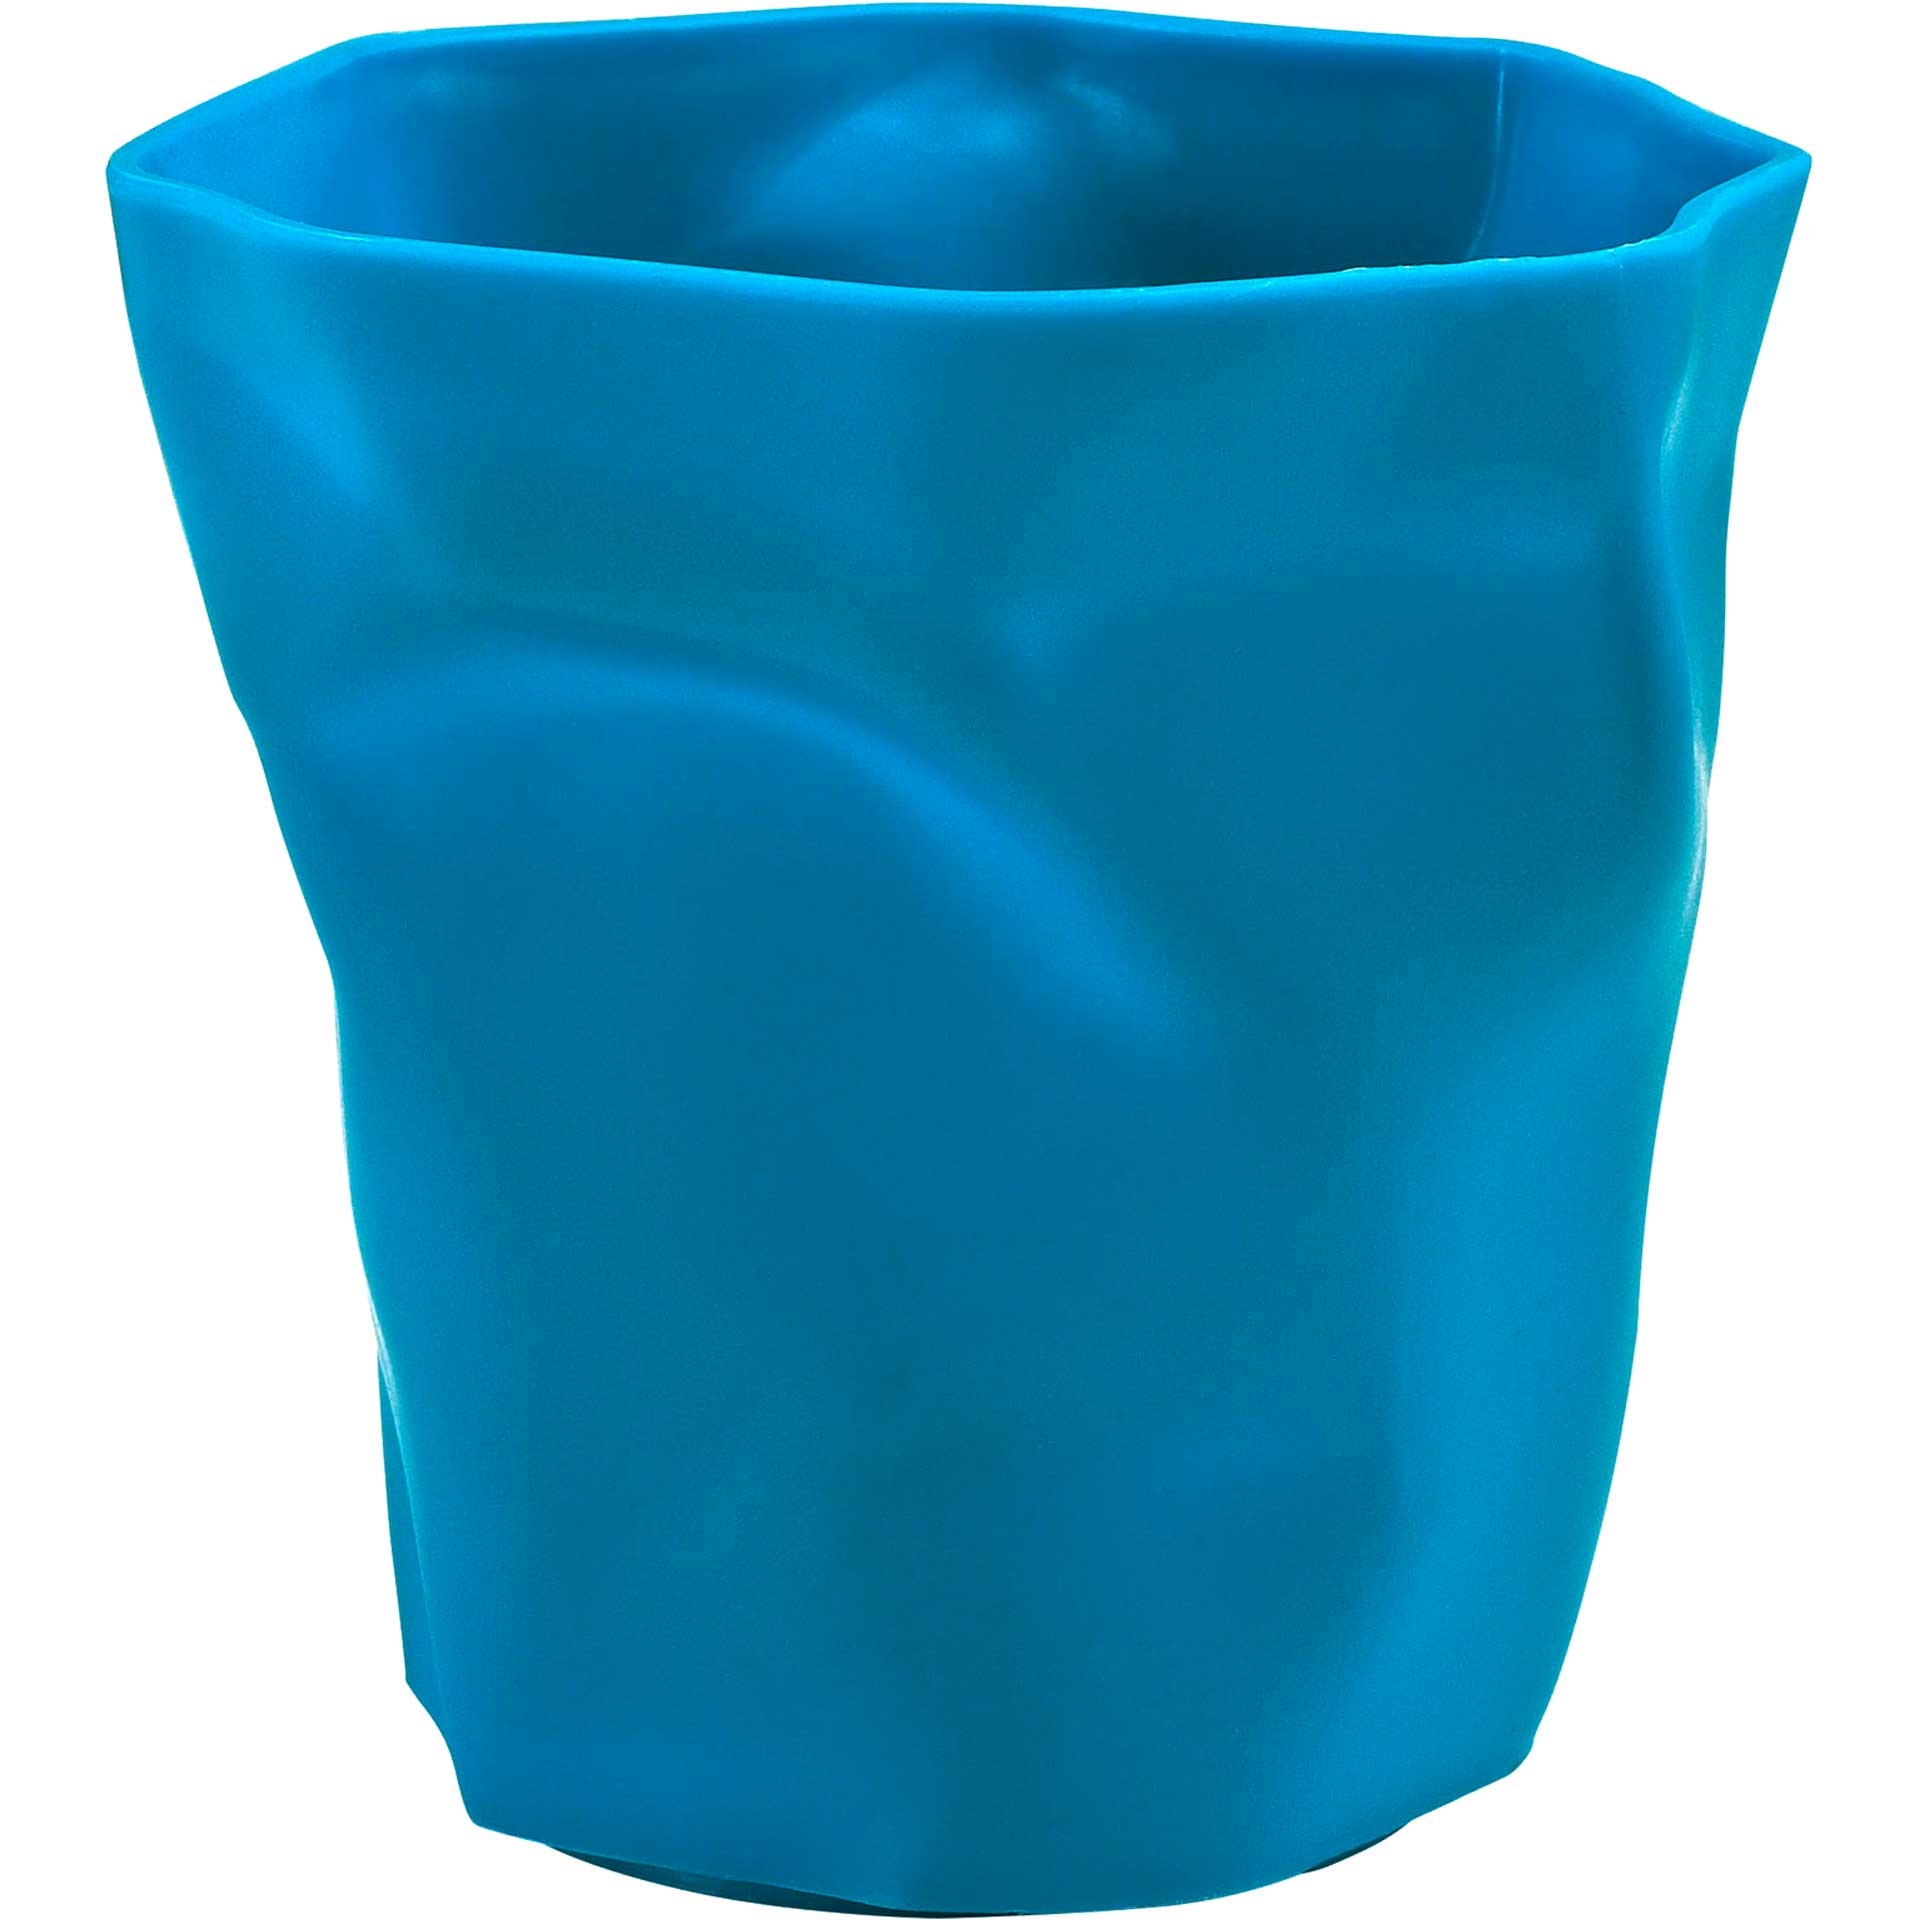 Lakh Pencil Holder Blue